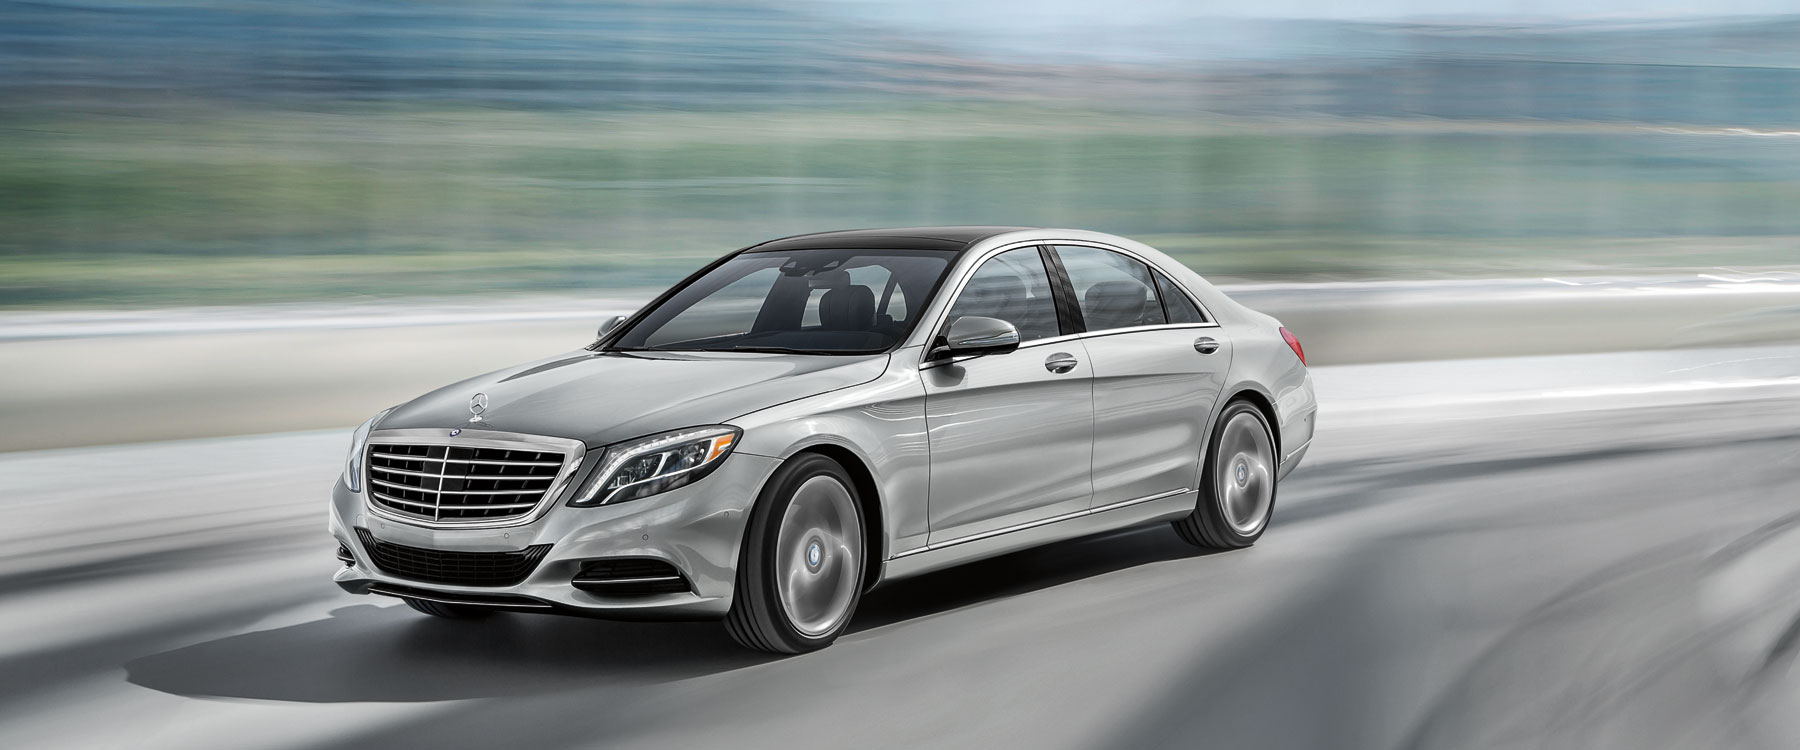 the luxe and efficient 2017 mercedes benz s 550 plug in hybrid. Black Bedroom Furniture Sets. Home Design Ideas